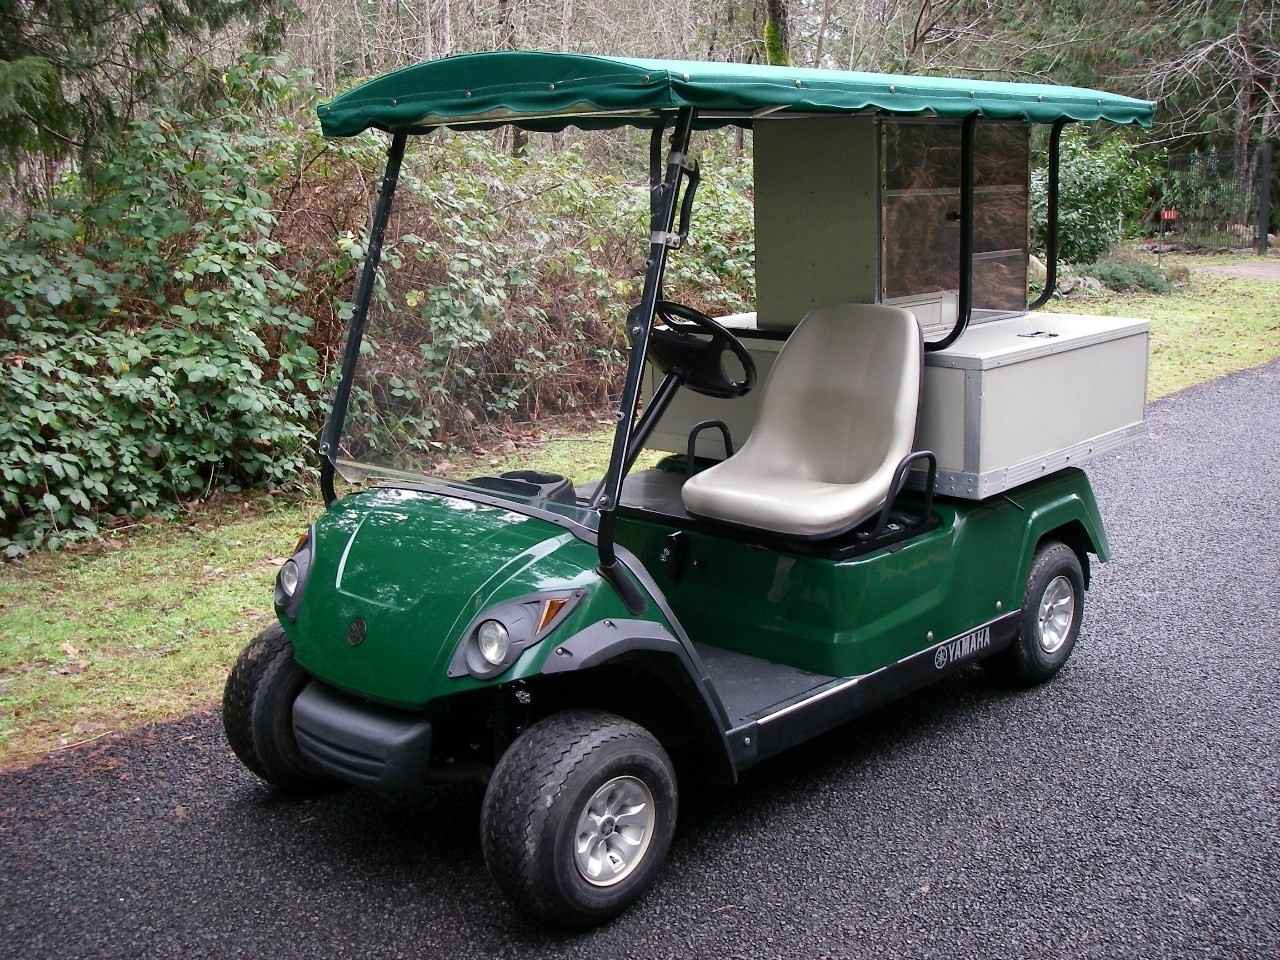 Used 2012 Yamaha Beverage Golf Cart ATVs For Sale in Washington on  atvtrades com